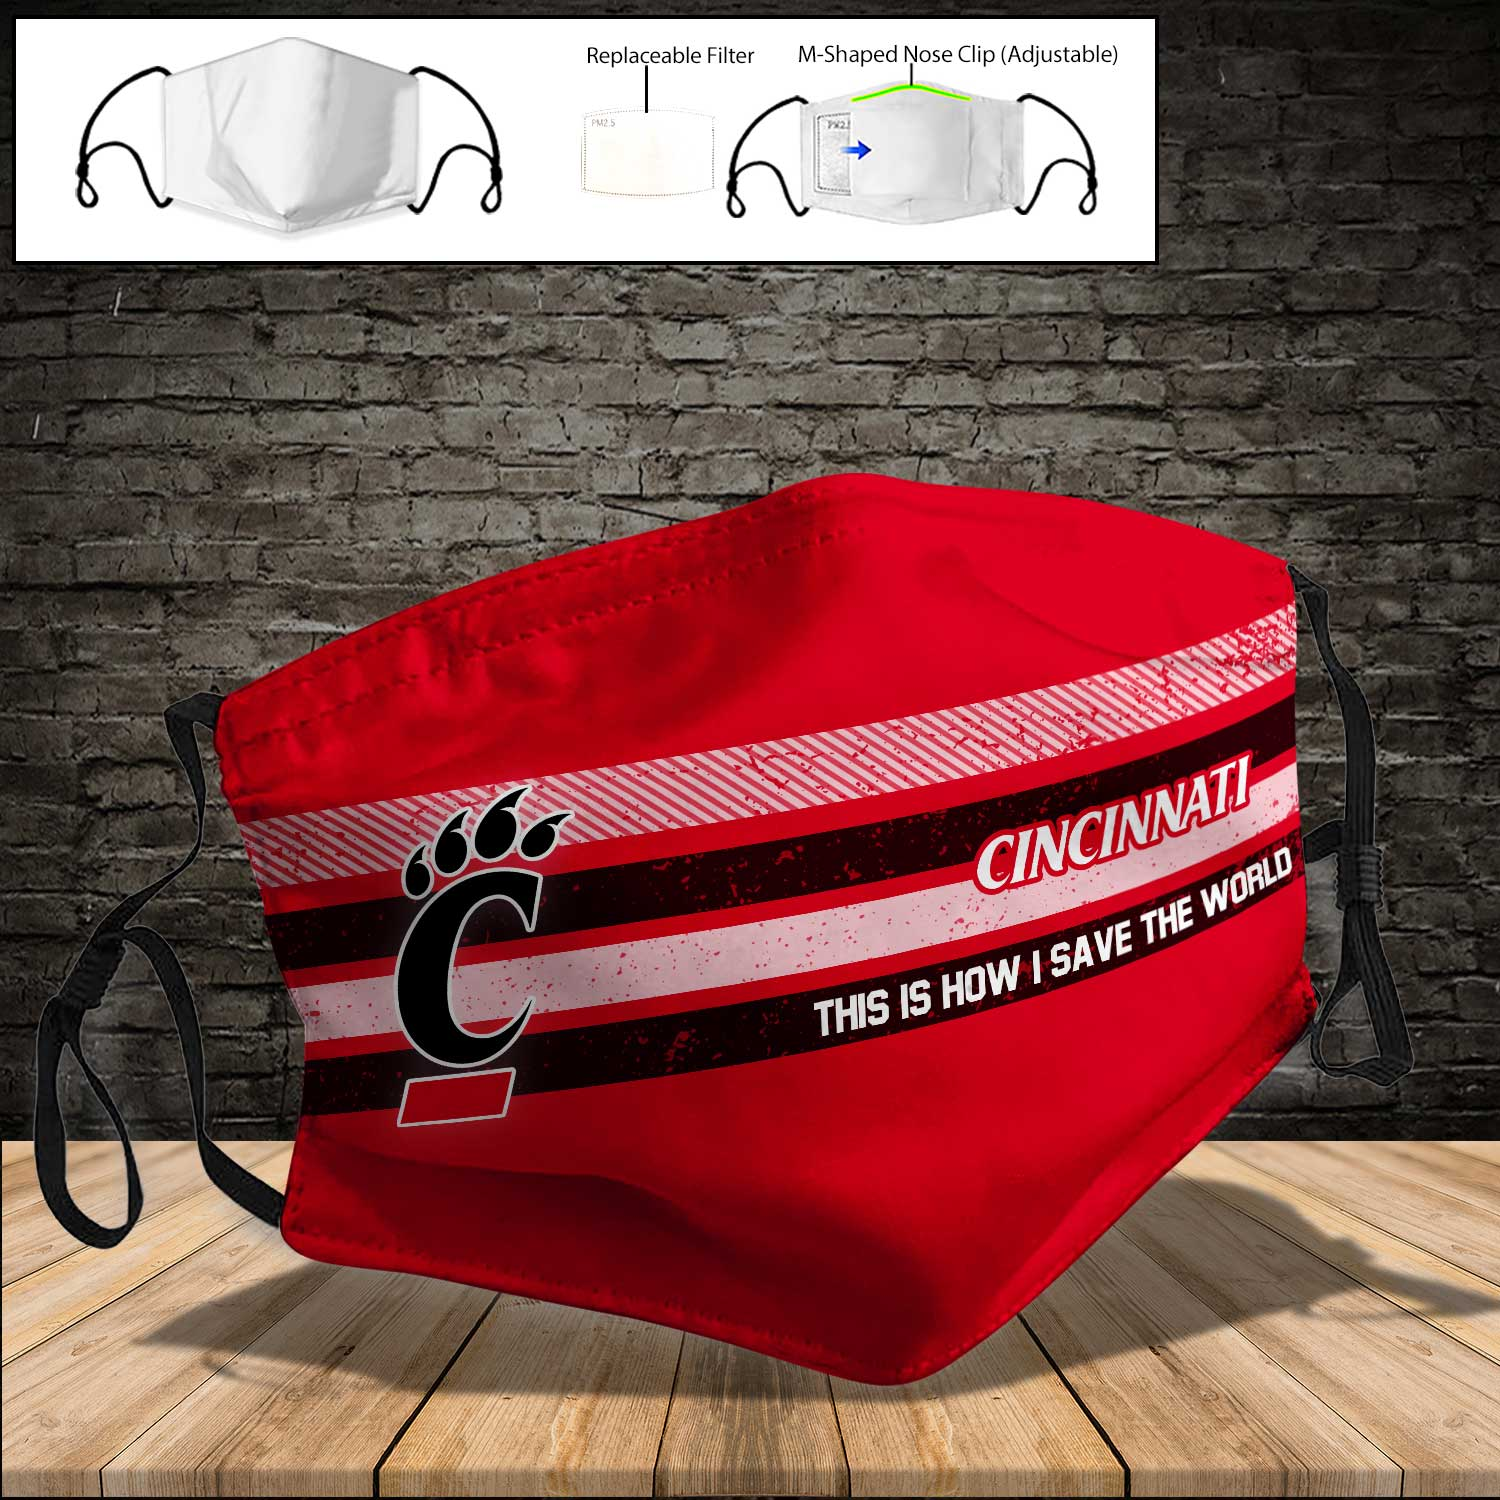 Cincinnati bearcats this is how i save the world full printing face mask 4